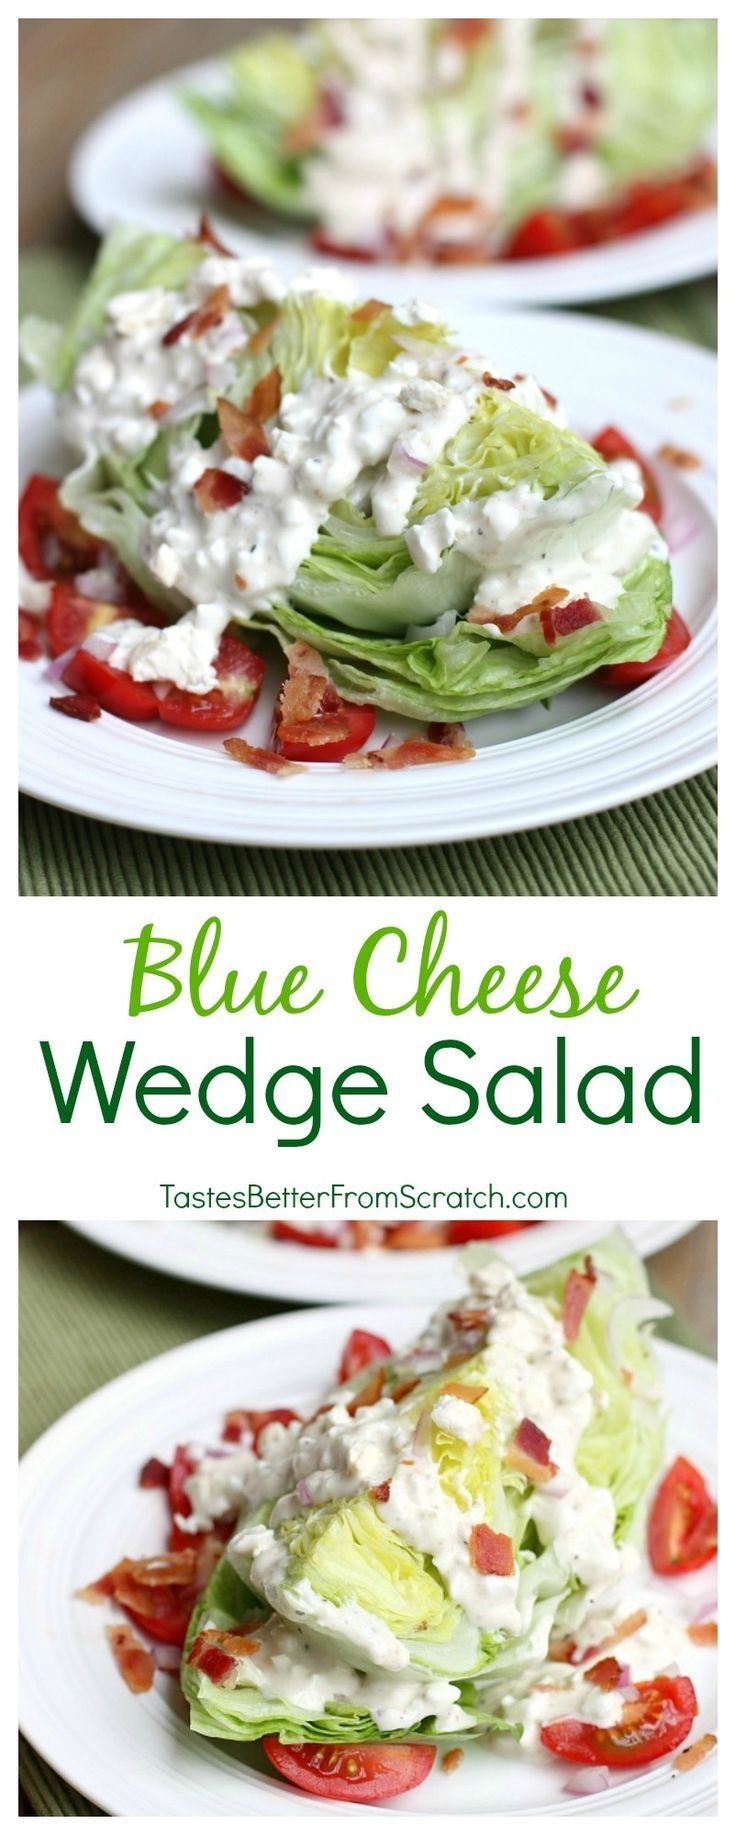 Simple Blue Cheese Wedge Salad recipe from TastesBetterFromScratch.com